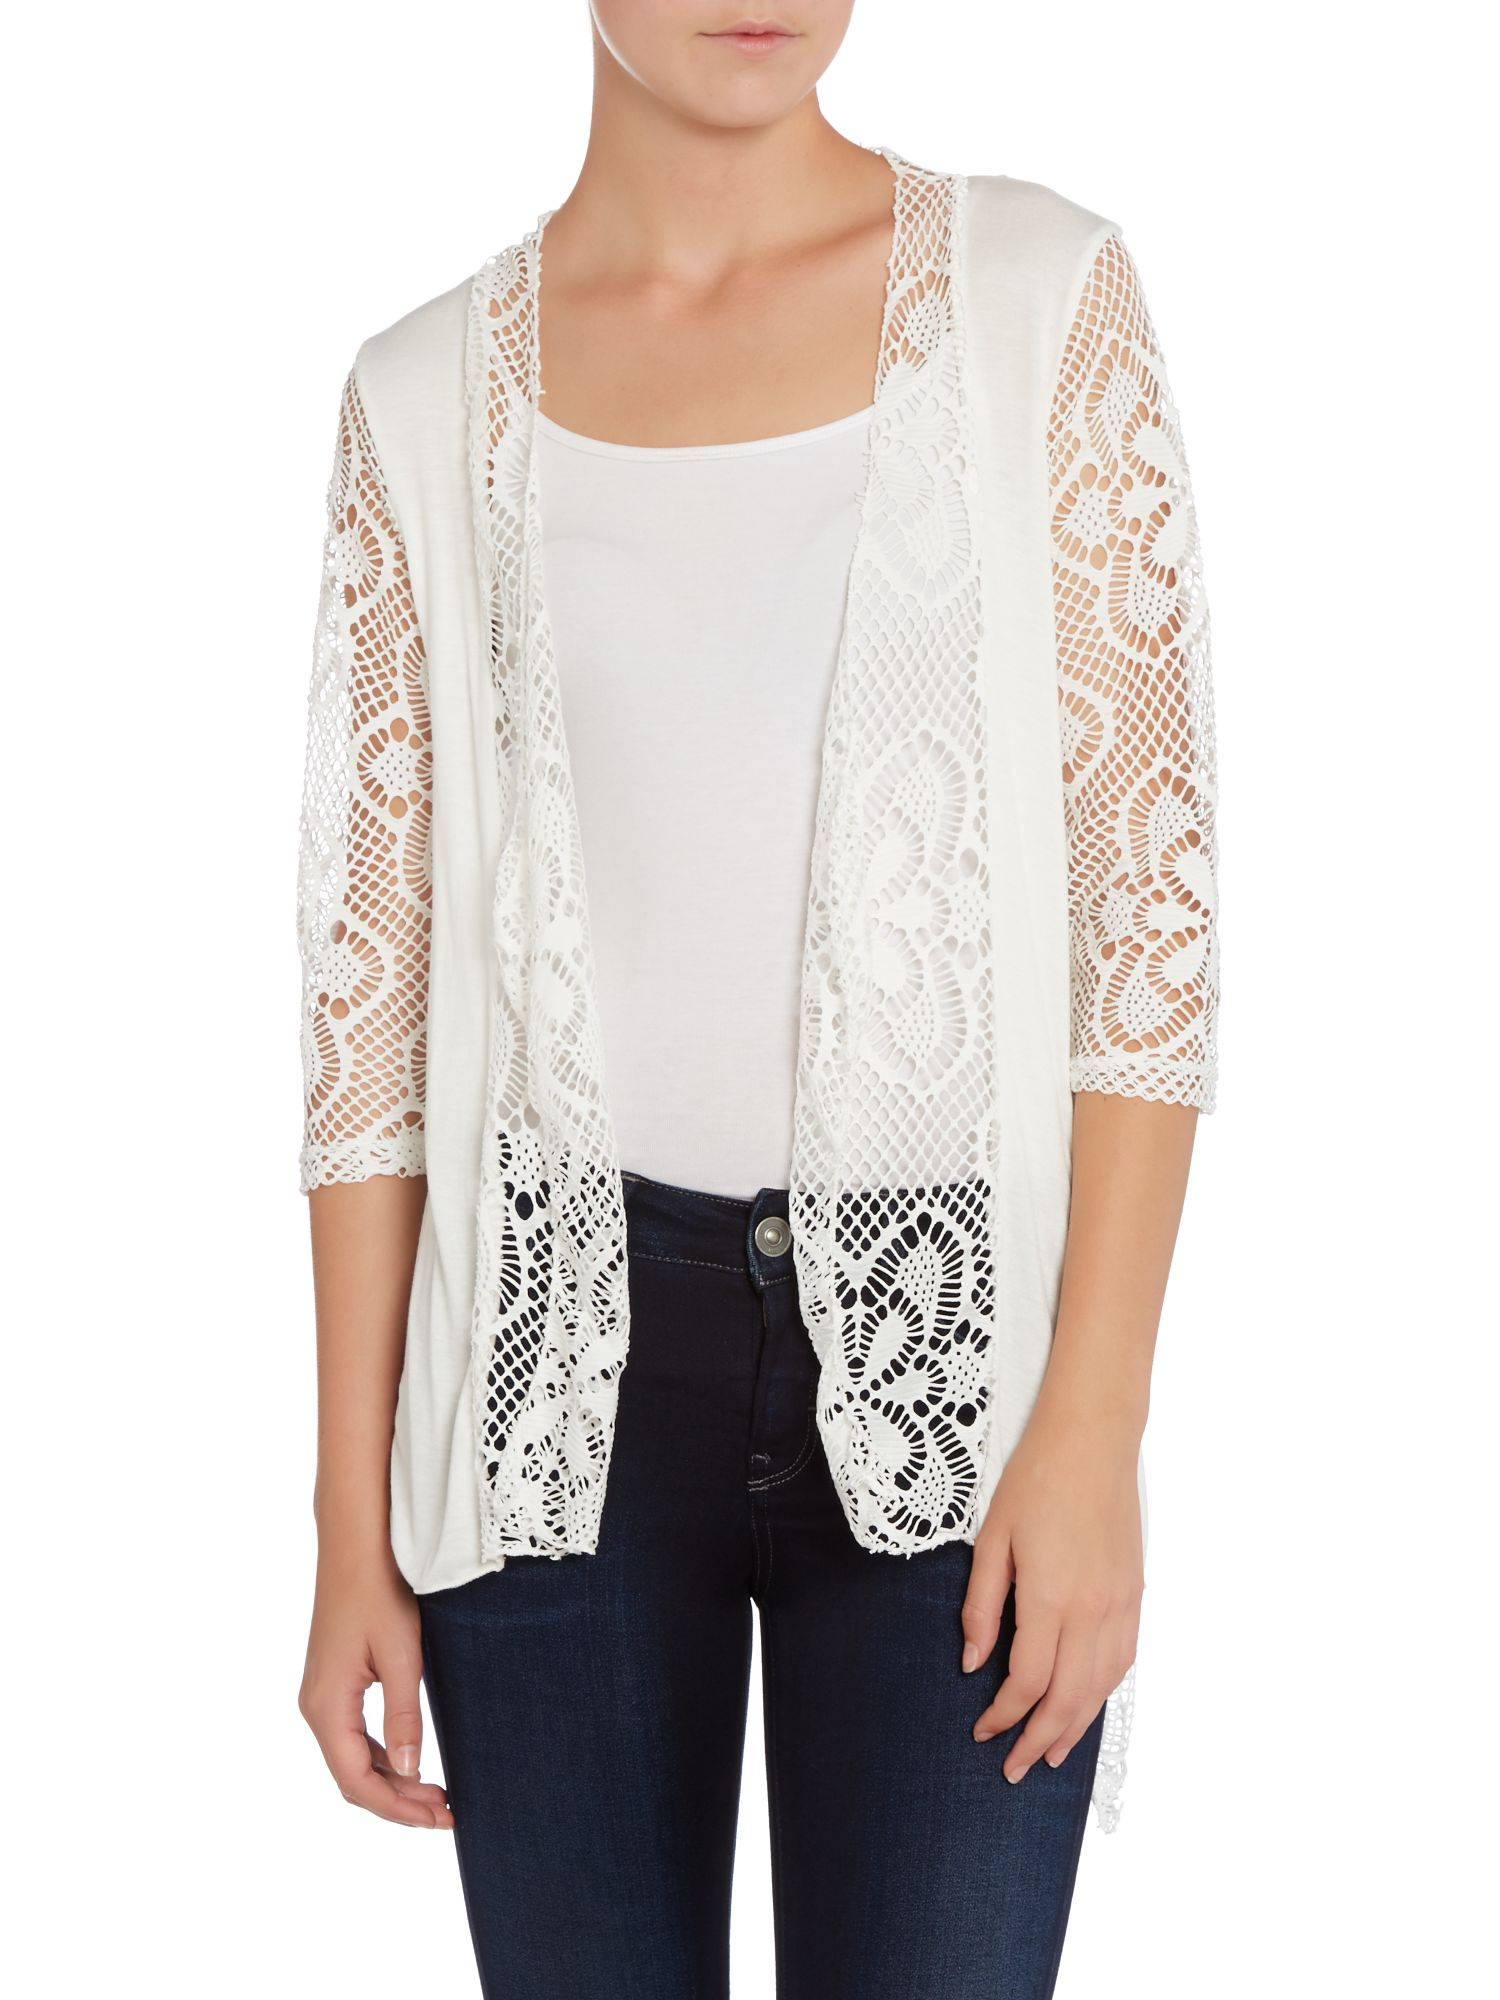 Laser cut floral lace panel cardigan